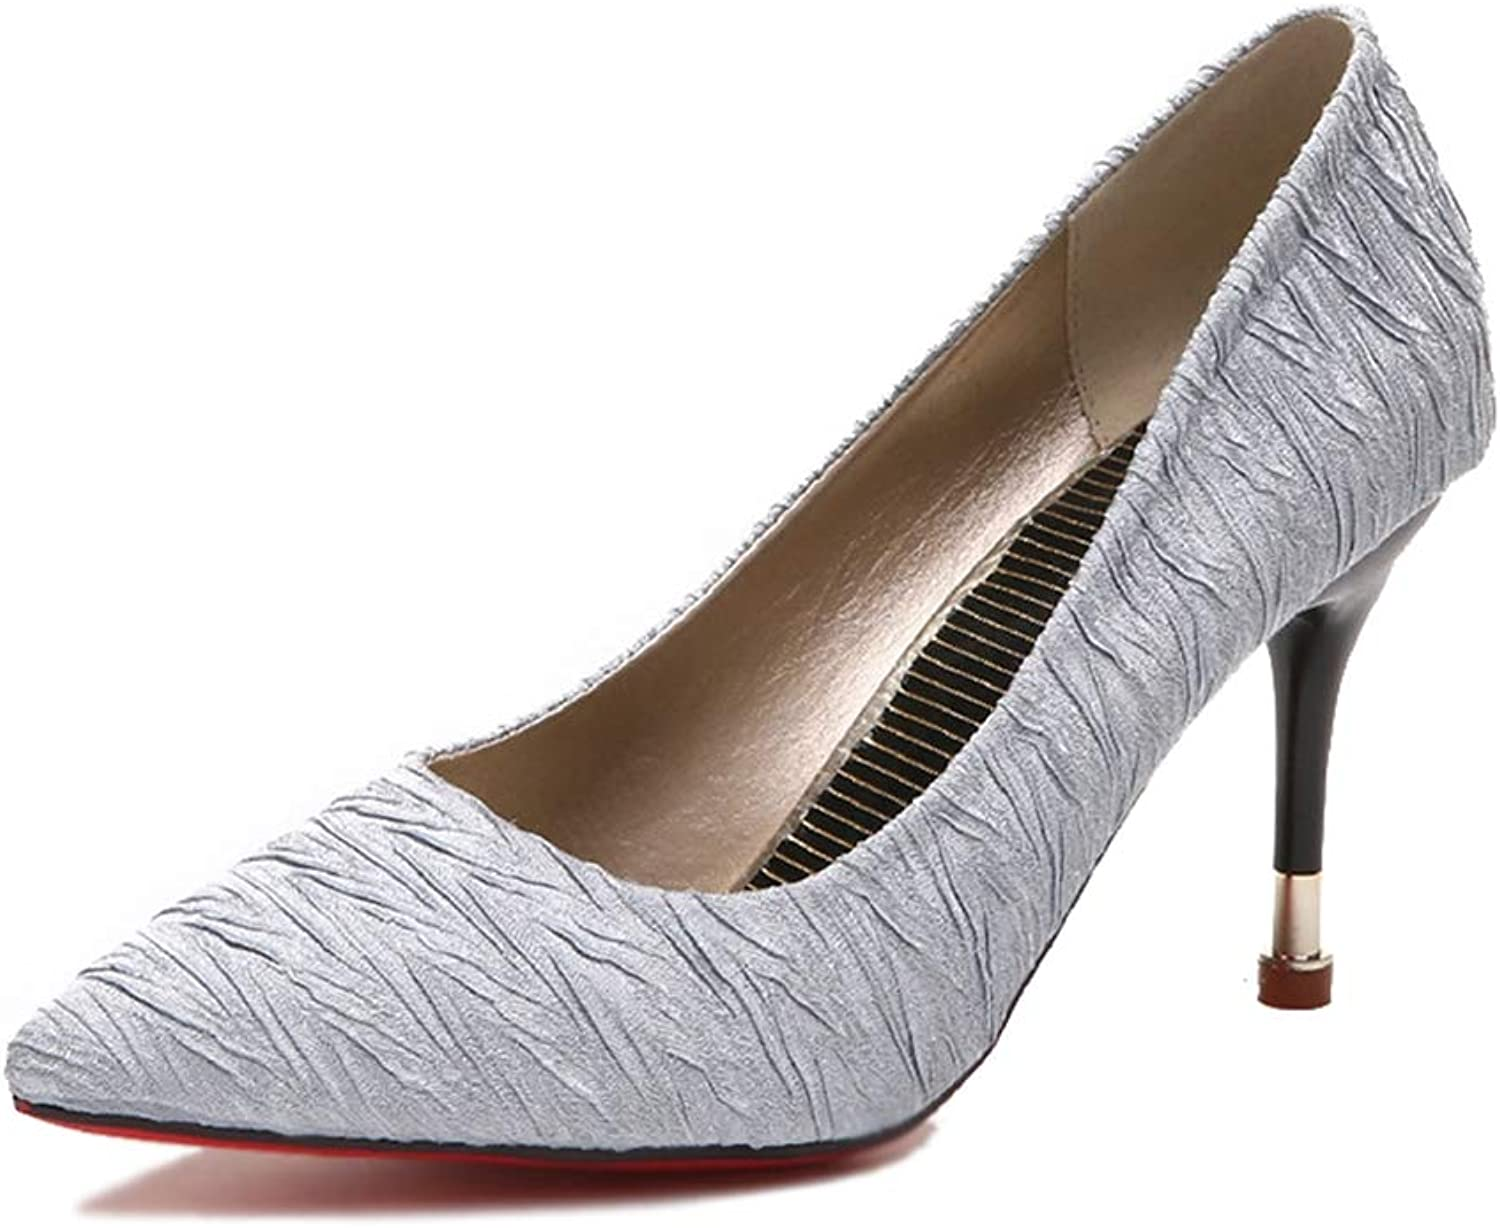 Phil Betty Women's Pumps,Elengant Classic Slip-on Grey Apricot Business Dress High Heels